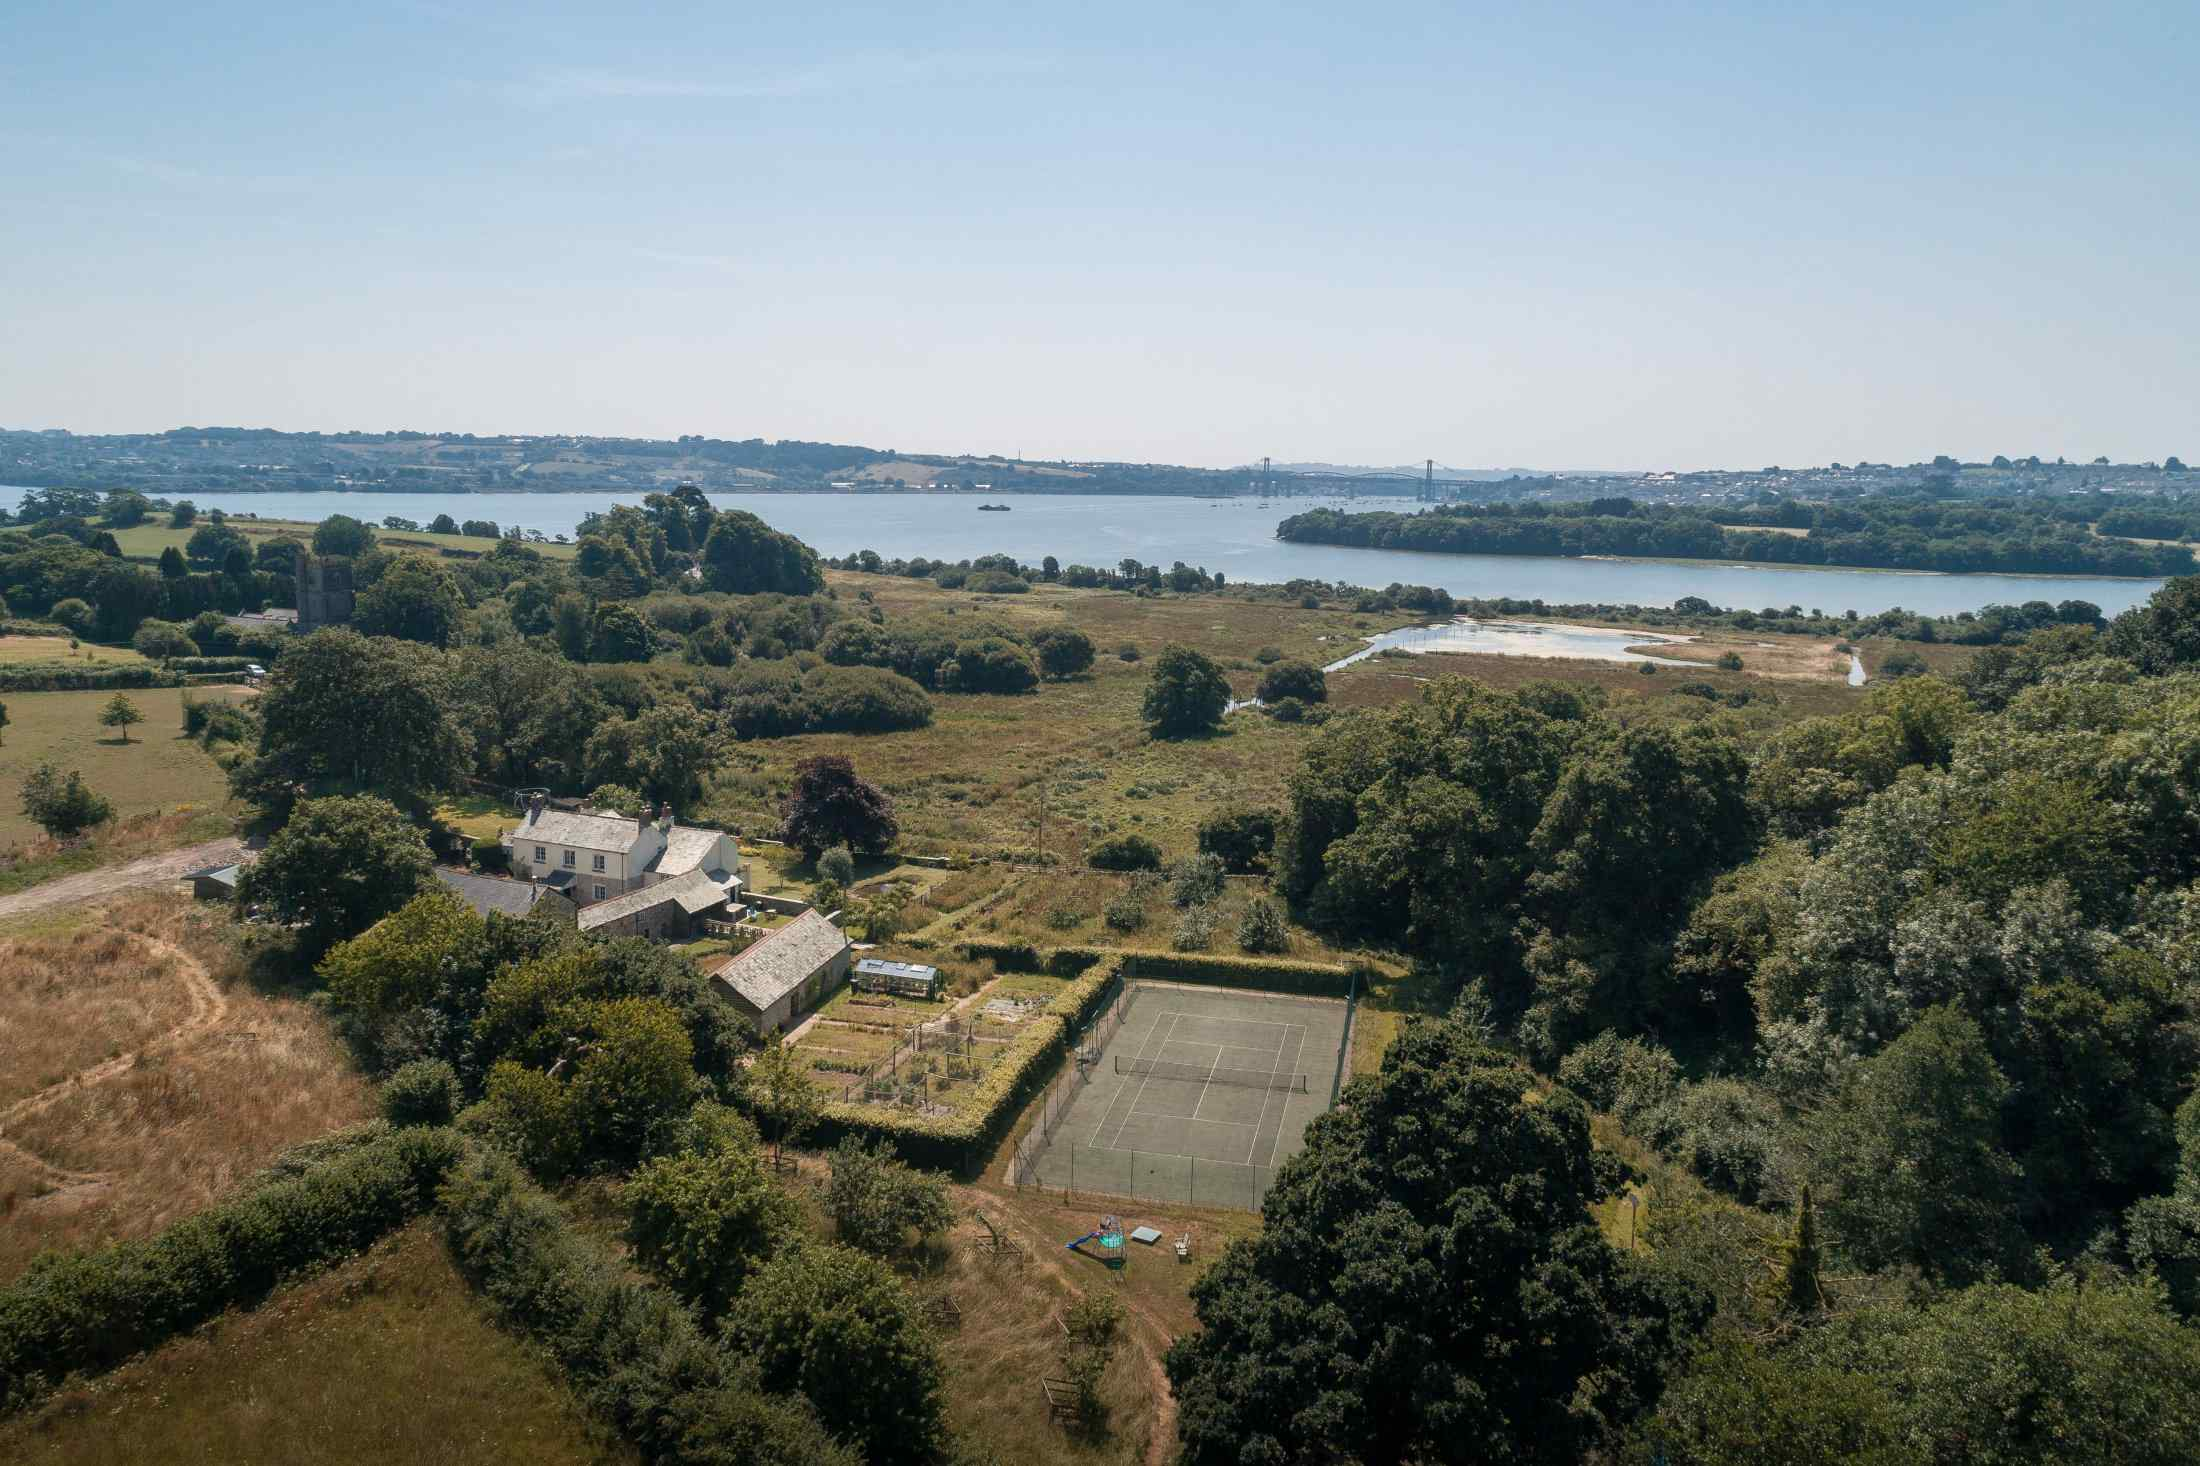 Lower Marsh Farm from the air